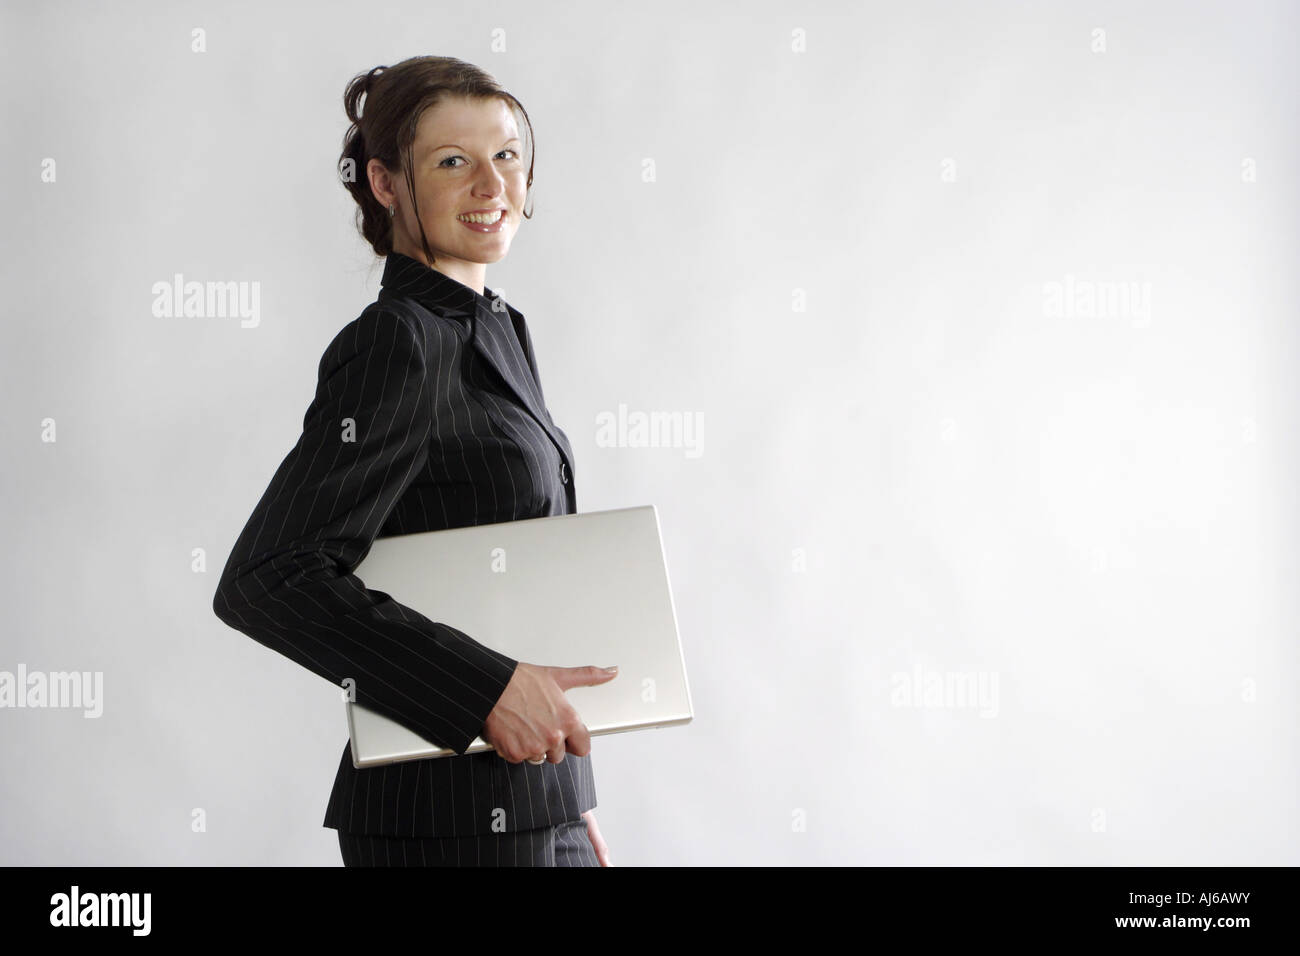 young woman in bussiness outfit with laptop under her arm, Germany Stock Photo